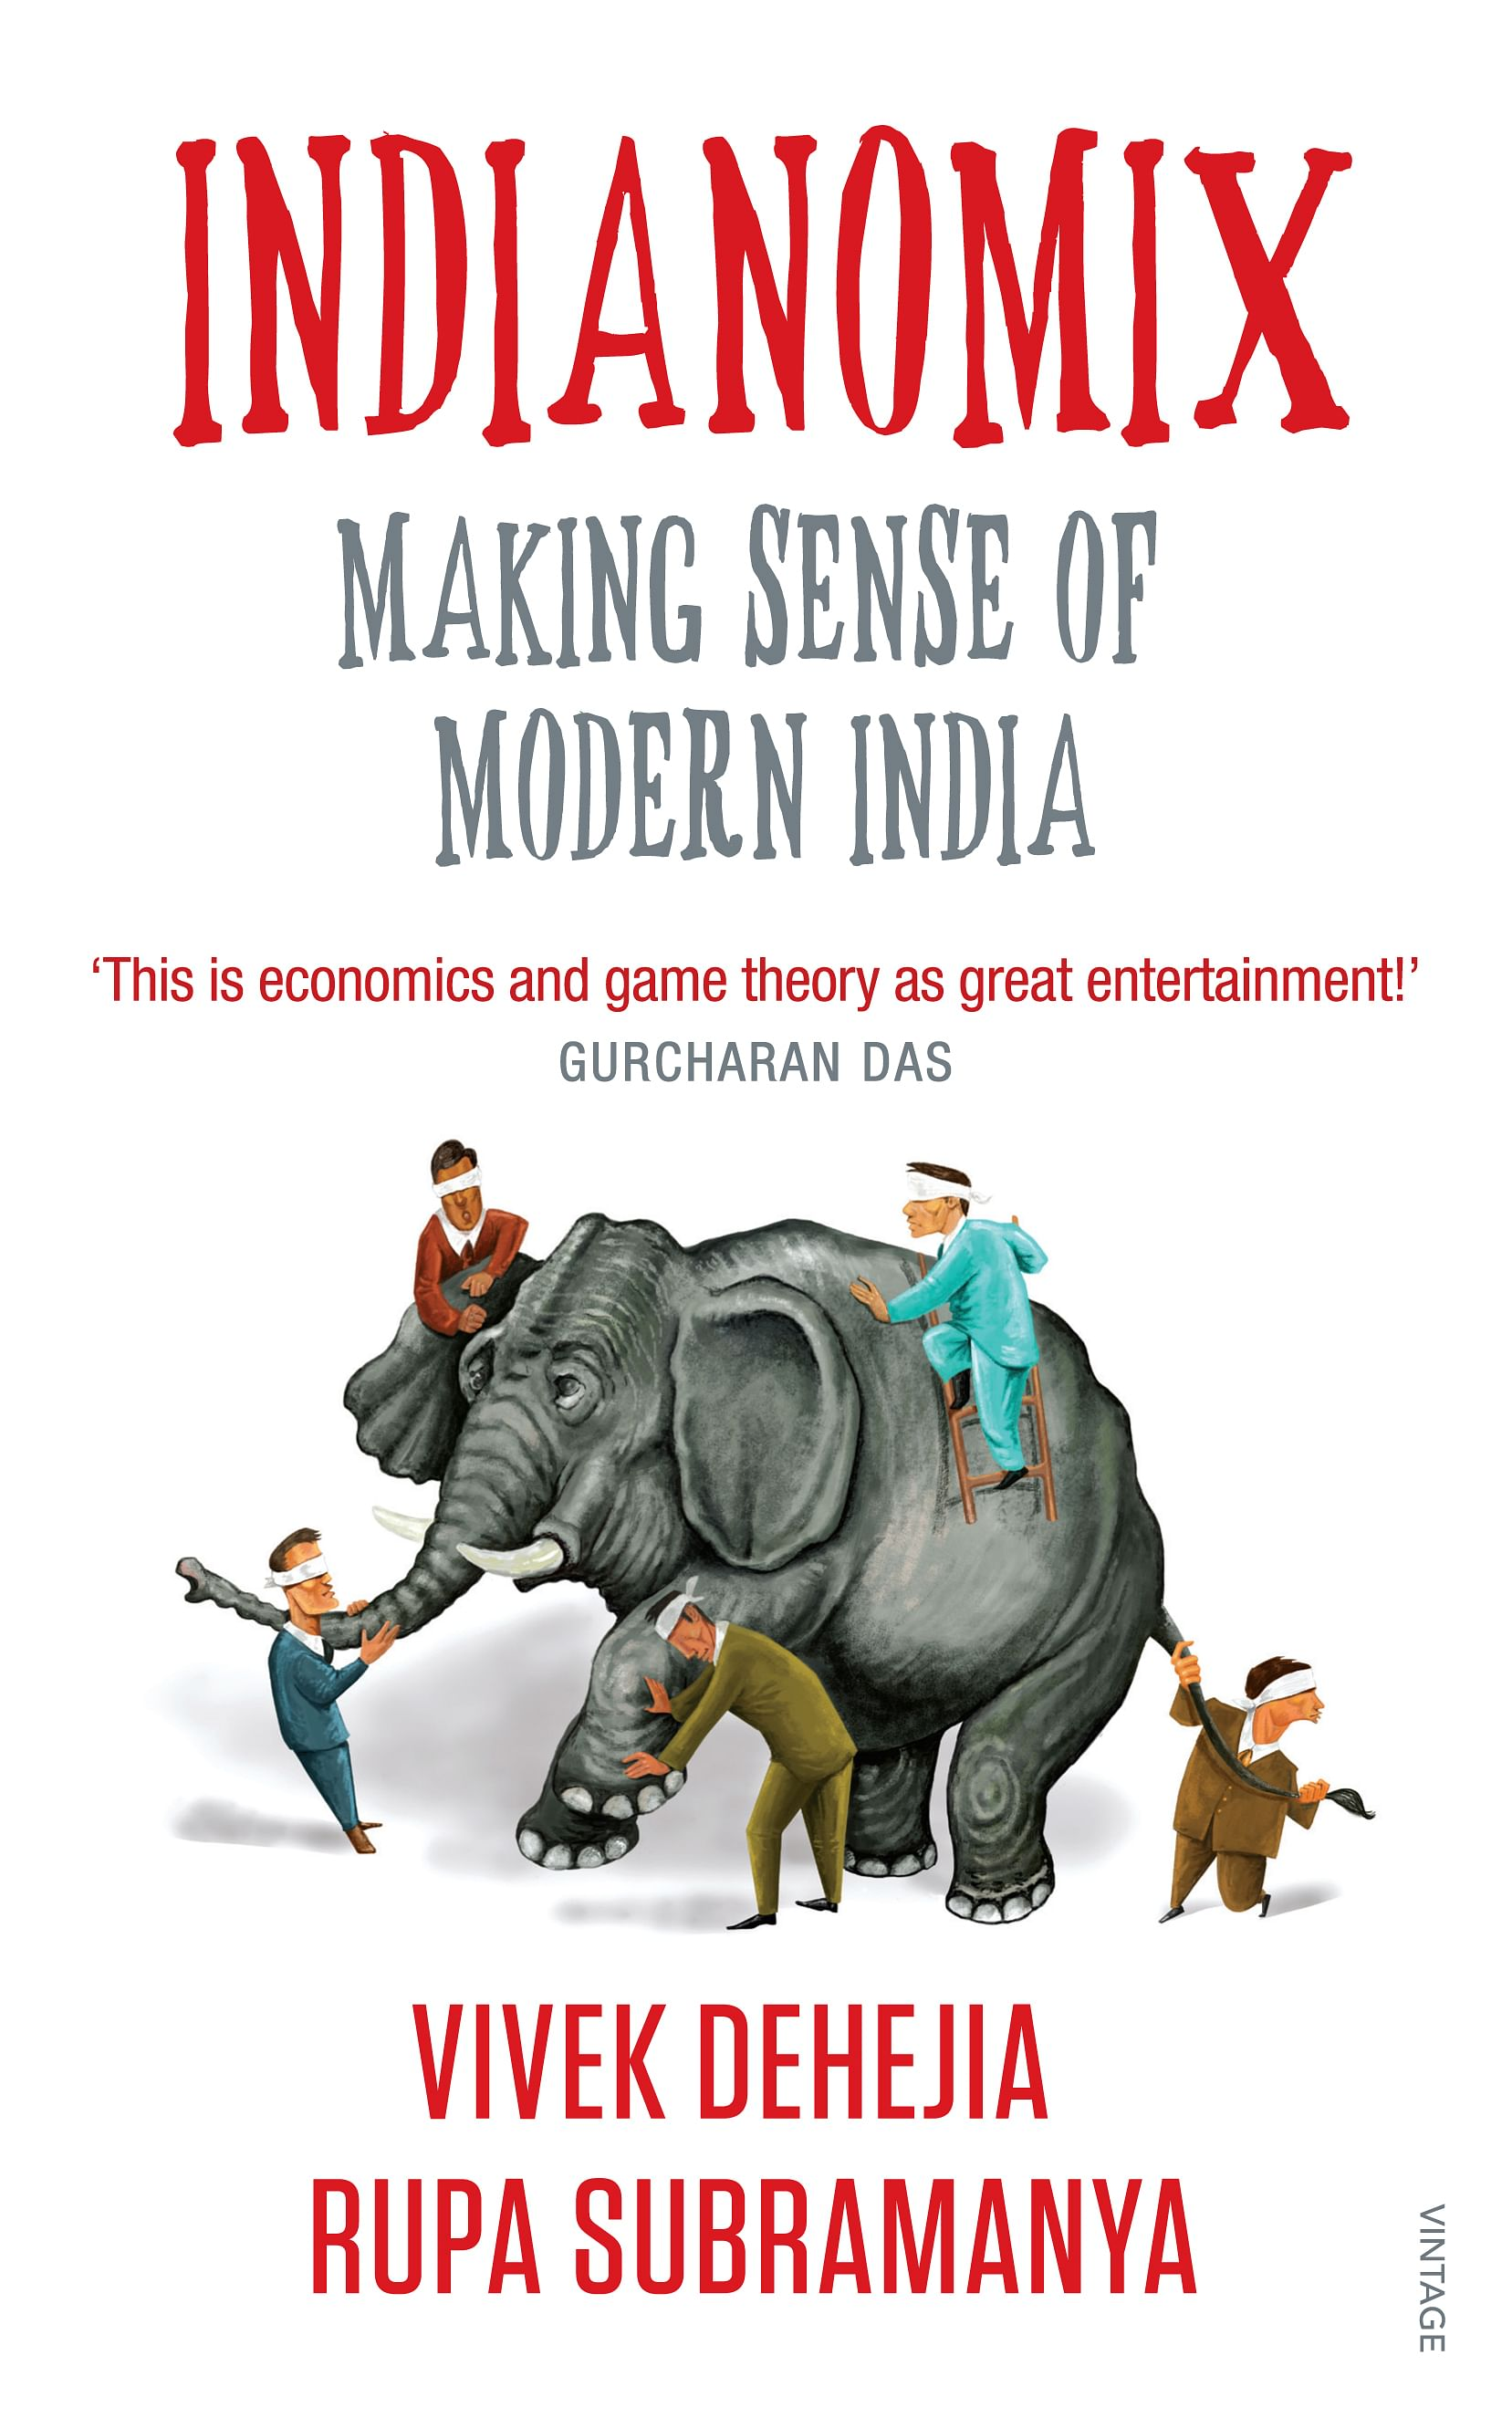 TBI Book Review: Indianomix – Making Sense of Modern India